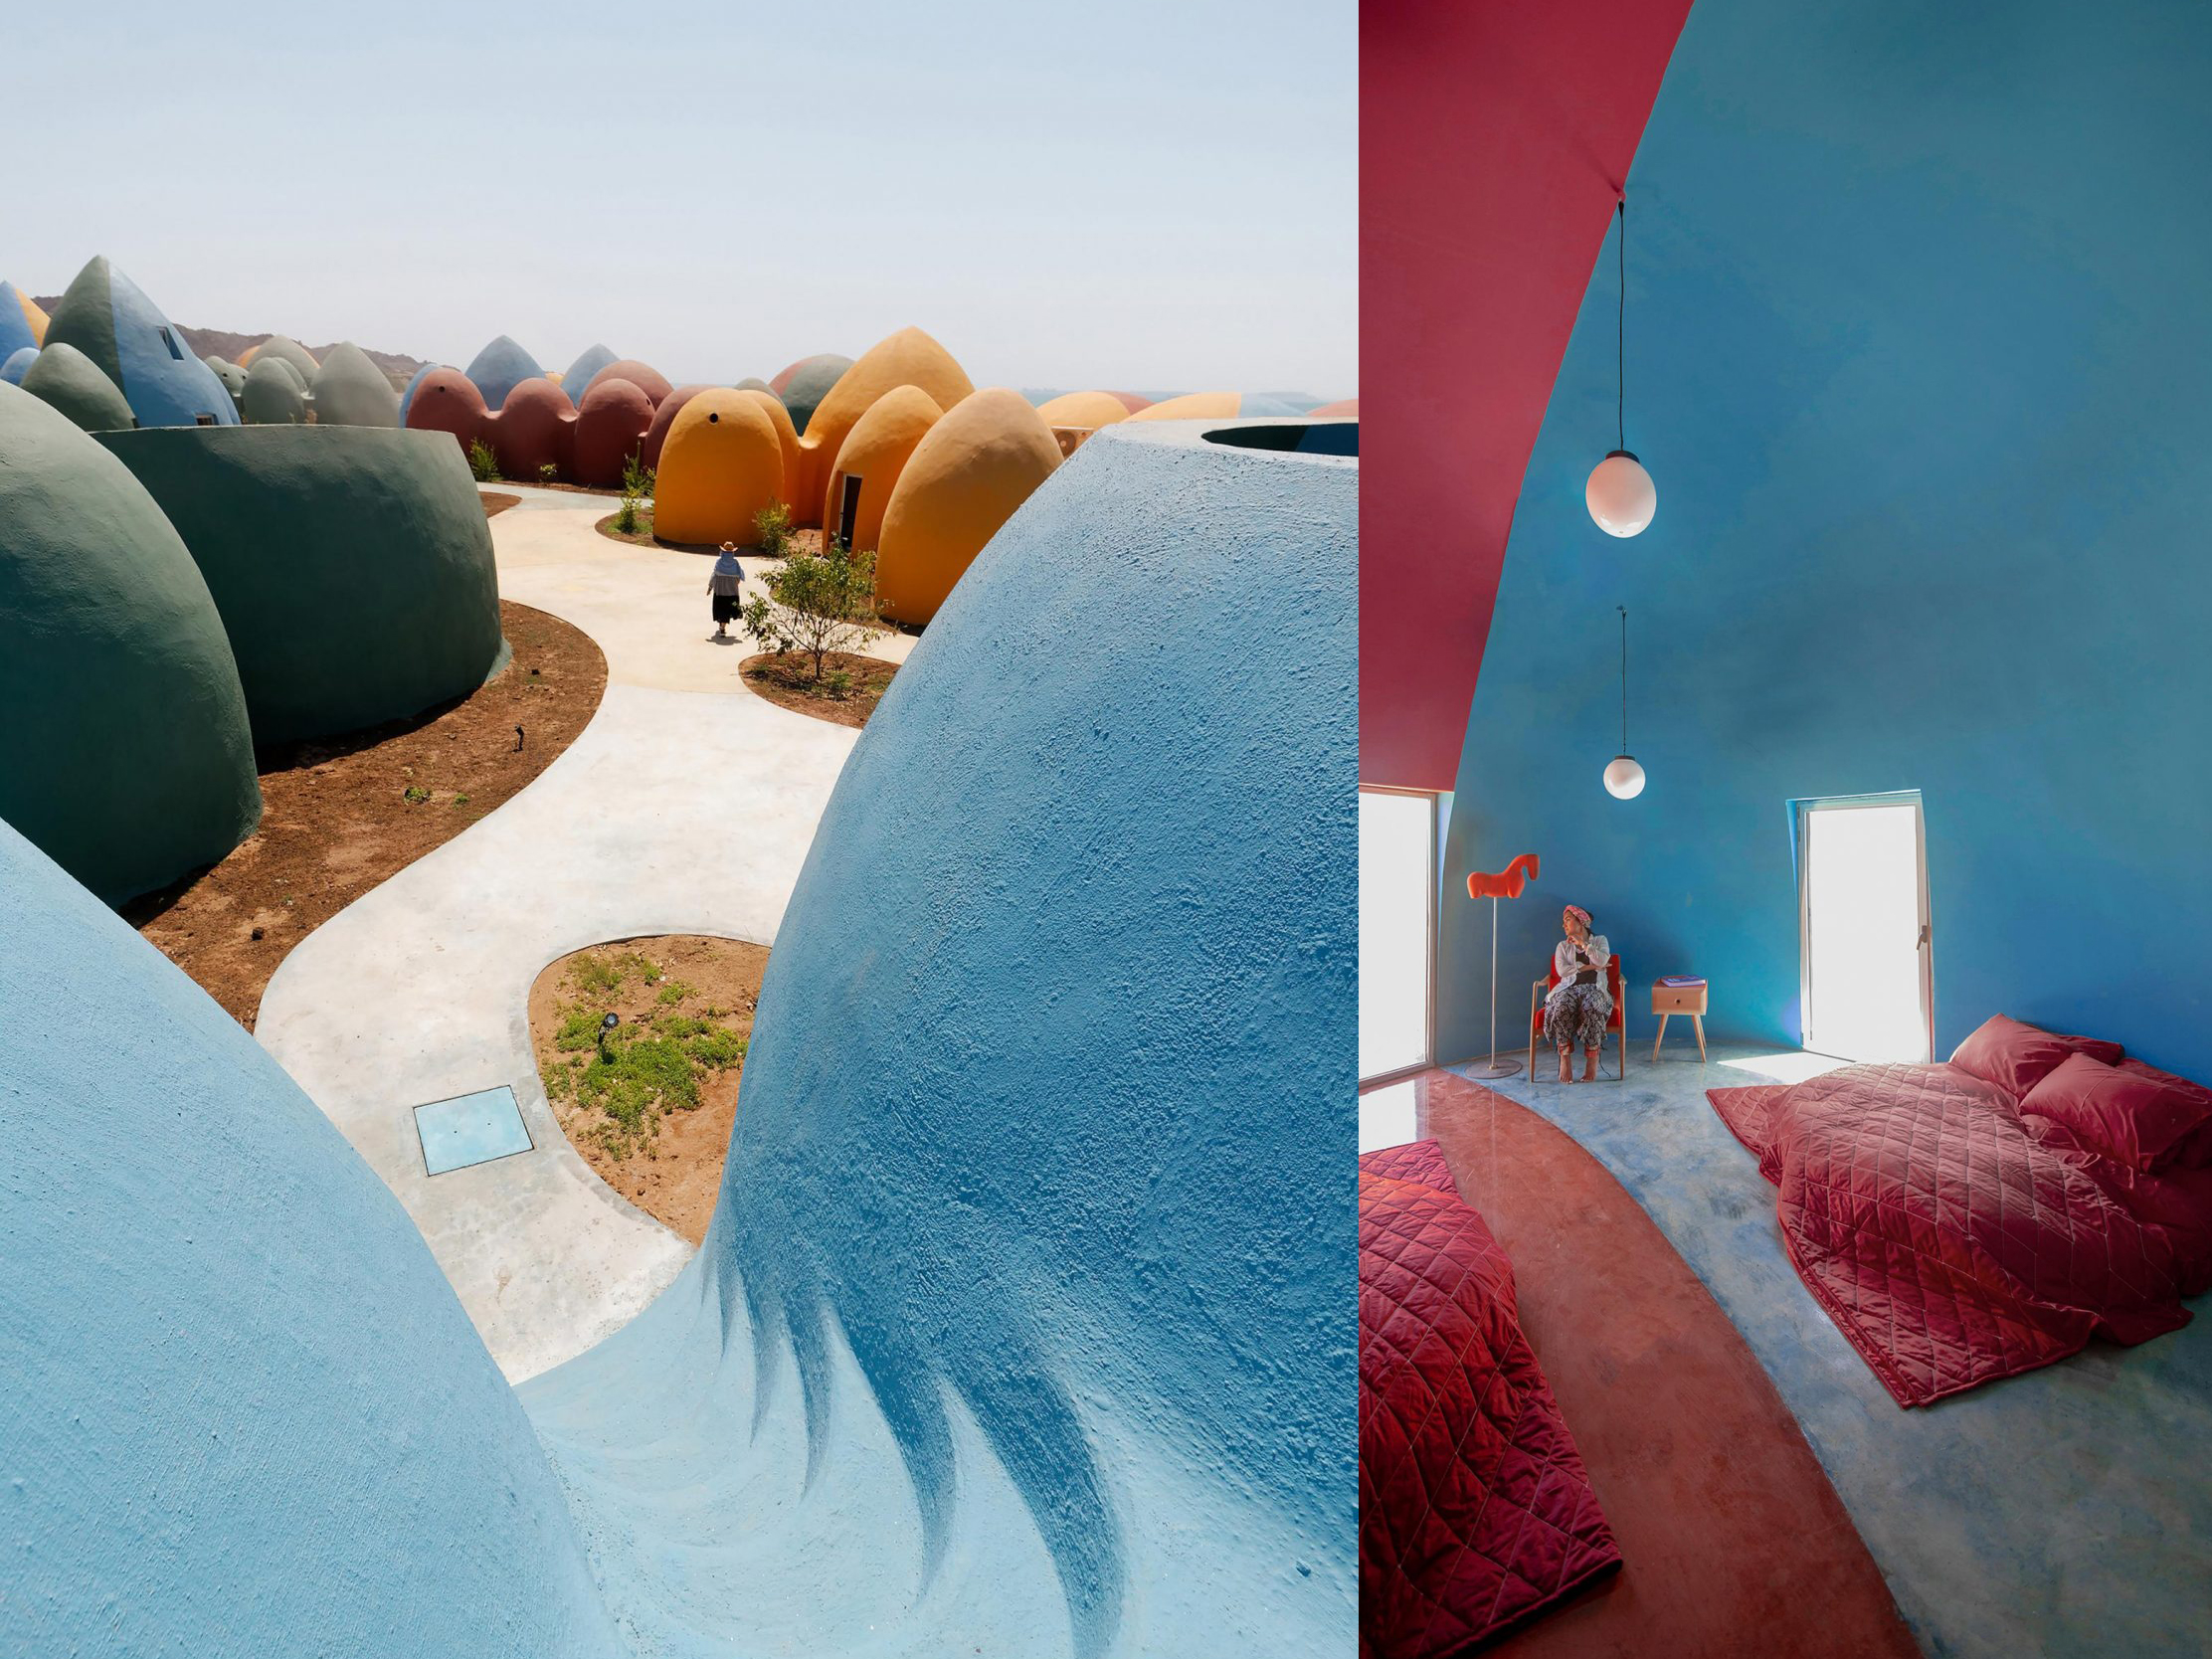 Colourful dome houses and holiday accommodation in the Persian Gulf